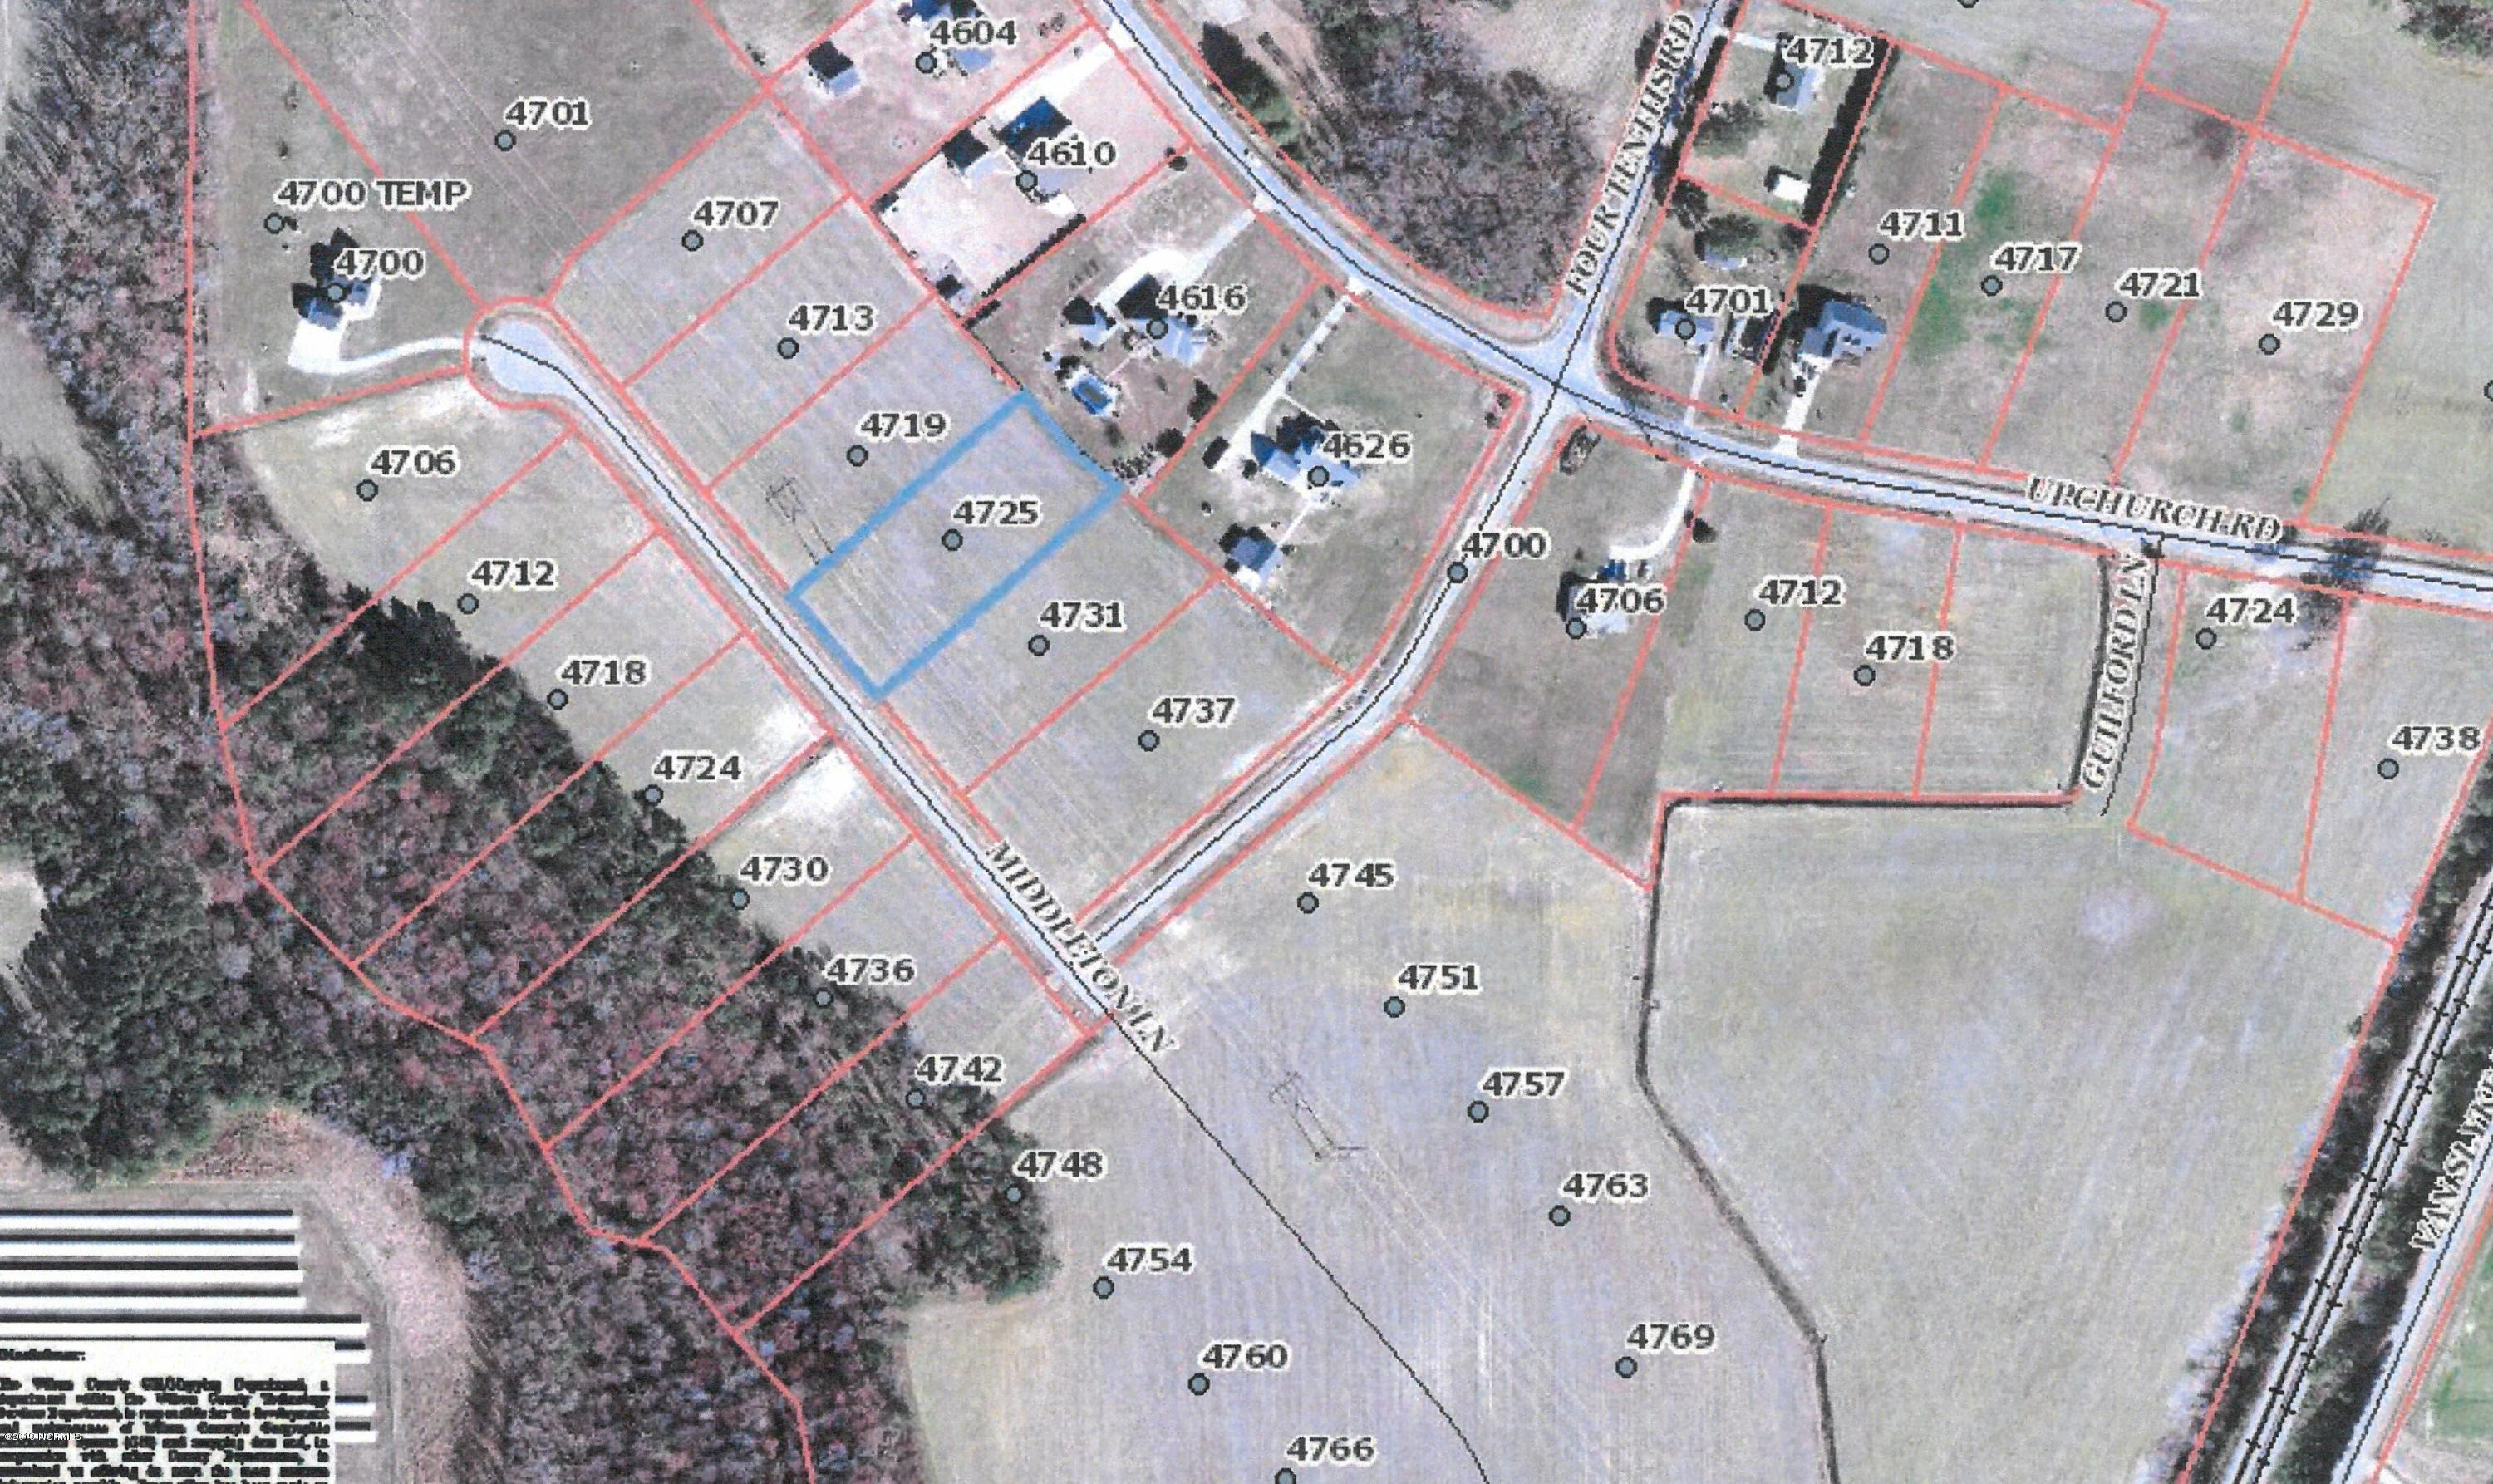 4718 Upchurch Road, Elm City, North Carolina 27822, ,Residential land,For sale,Upchurch,100196098